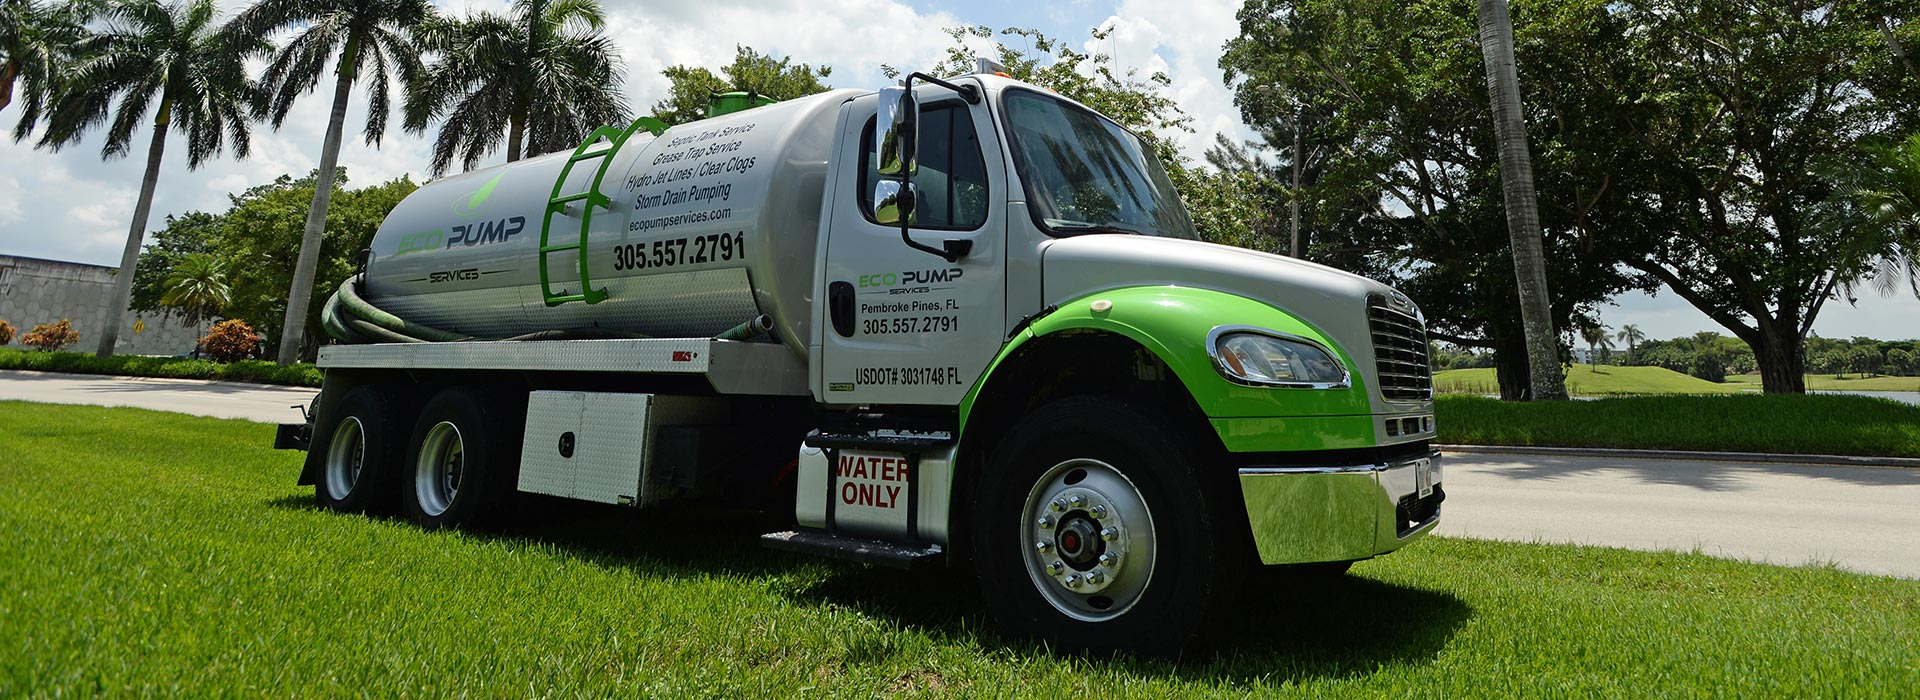 Eco Pump Services truck